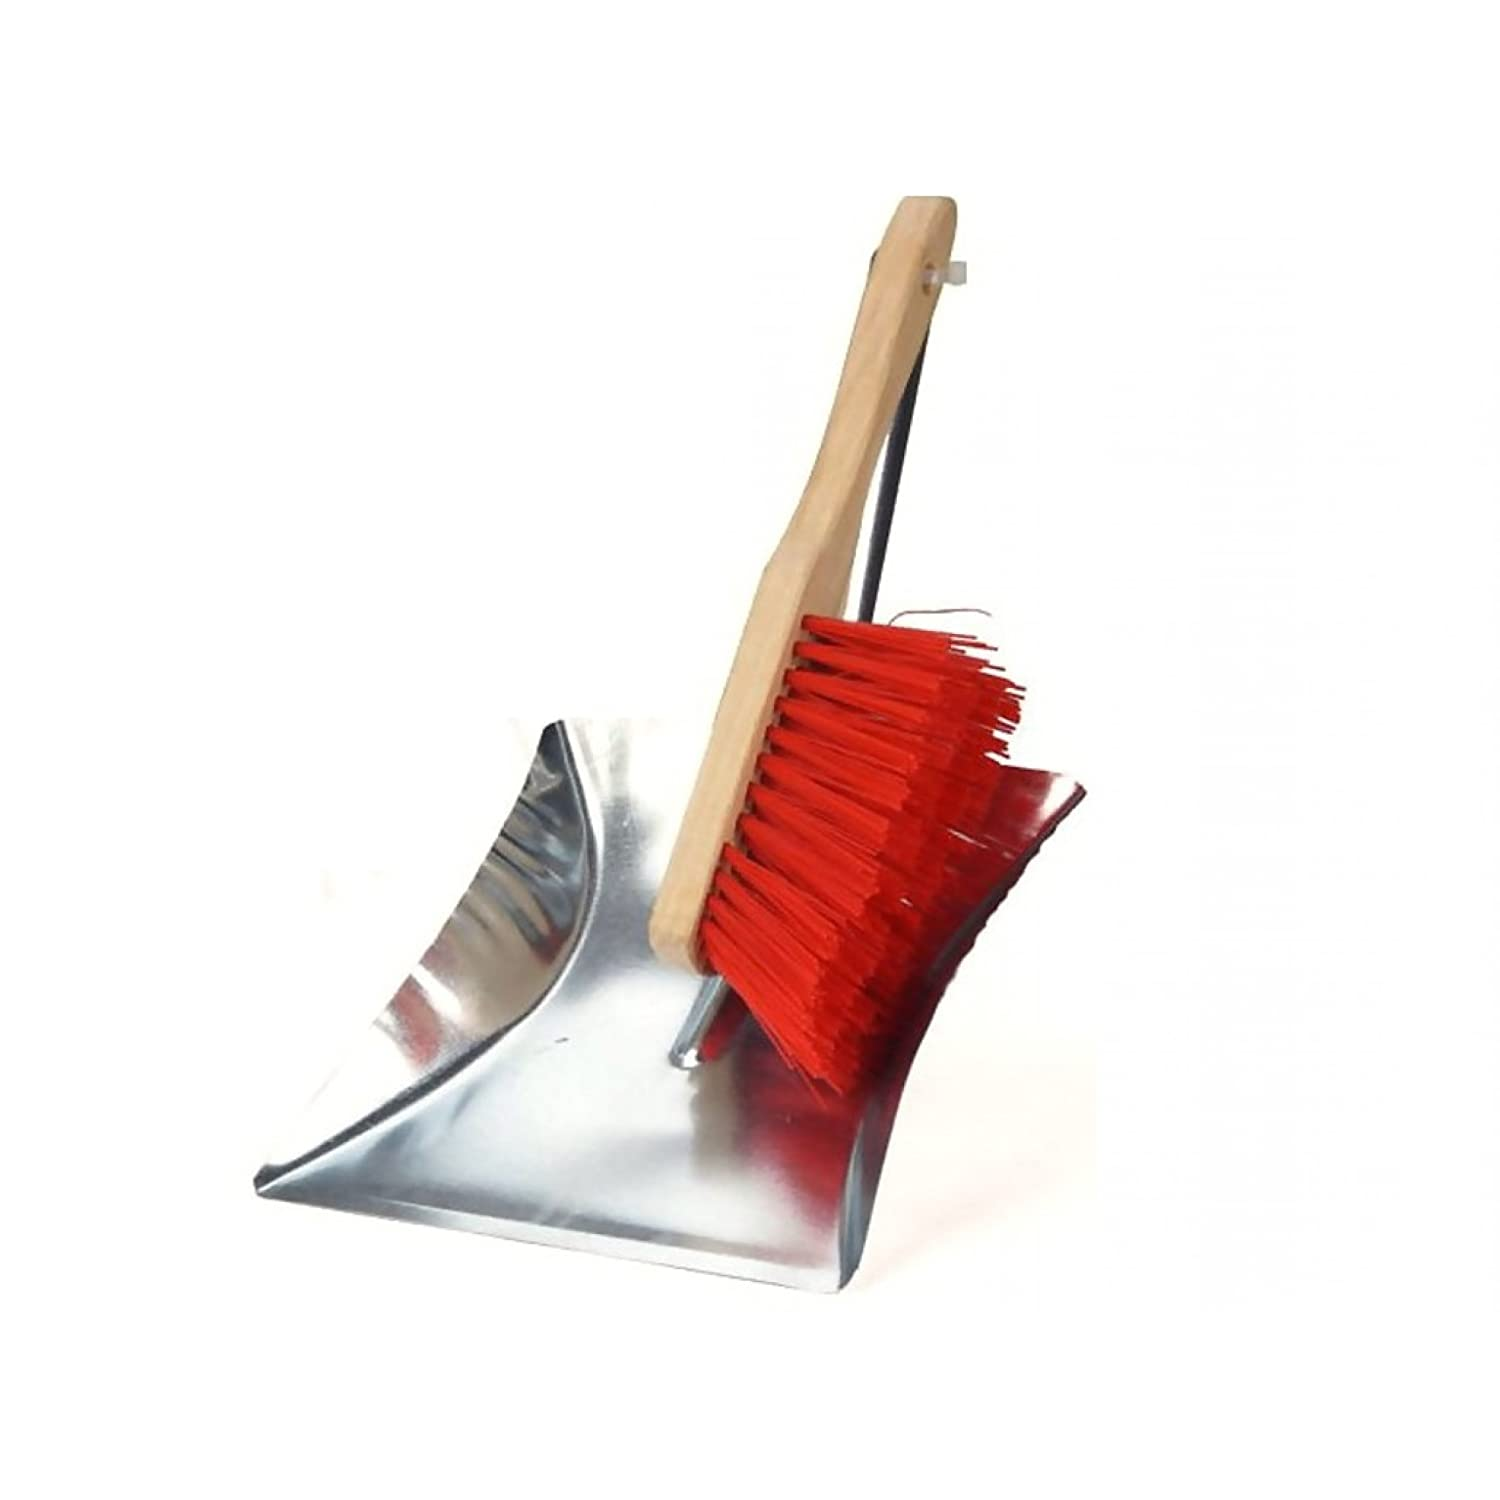 Metal Dust Pan and Brush Set Dustpan and Hand Brush Dustpan Galvanised Dustpan and Brush ka